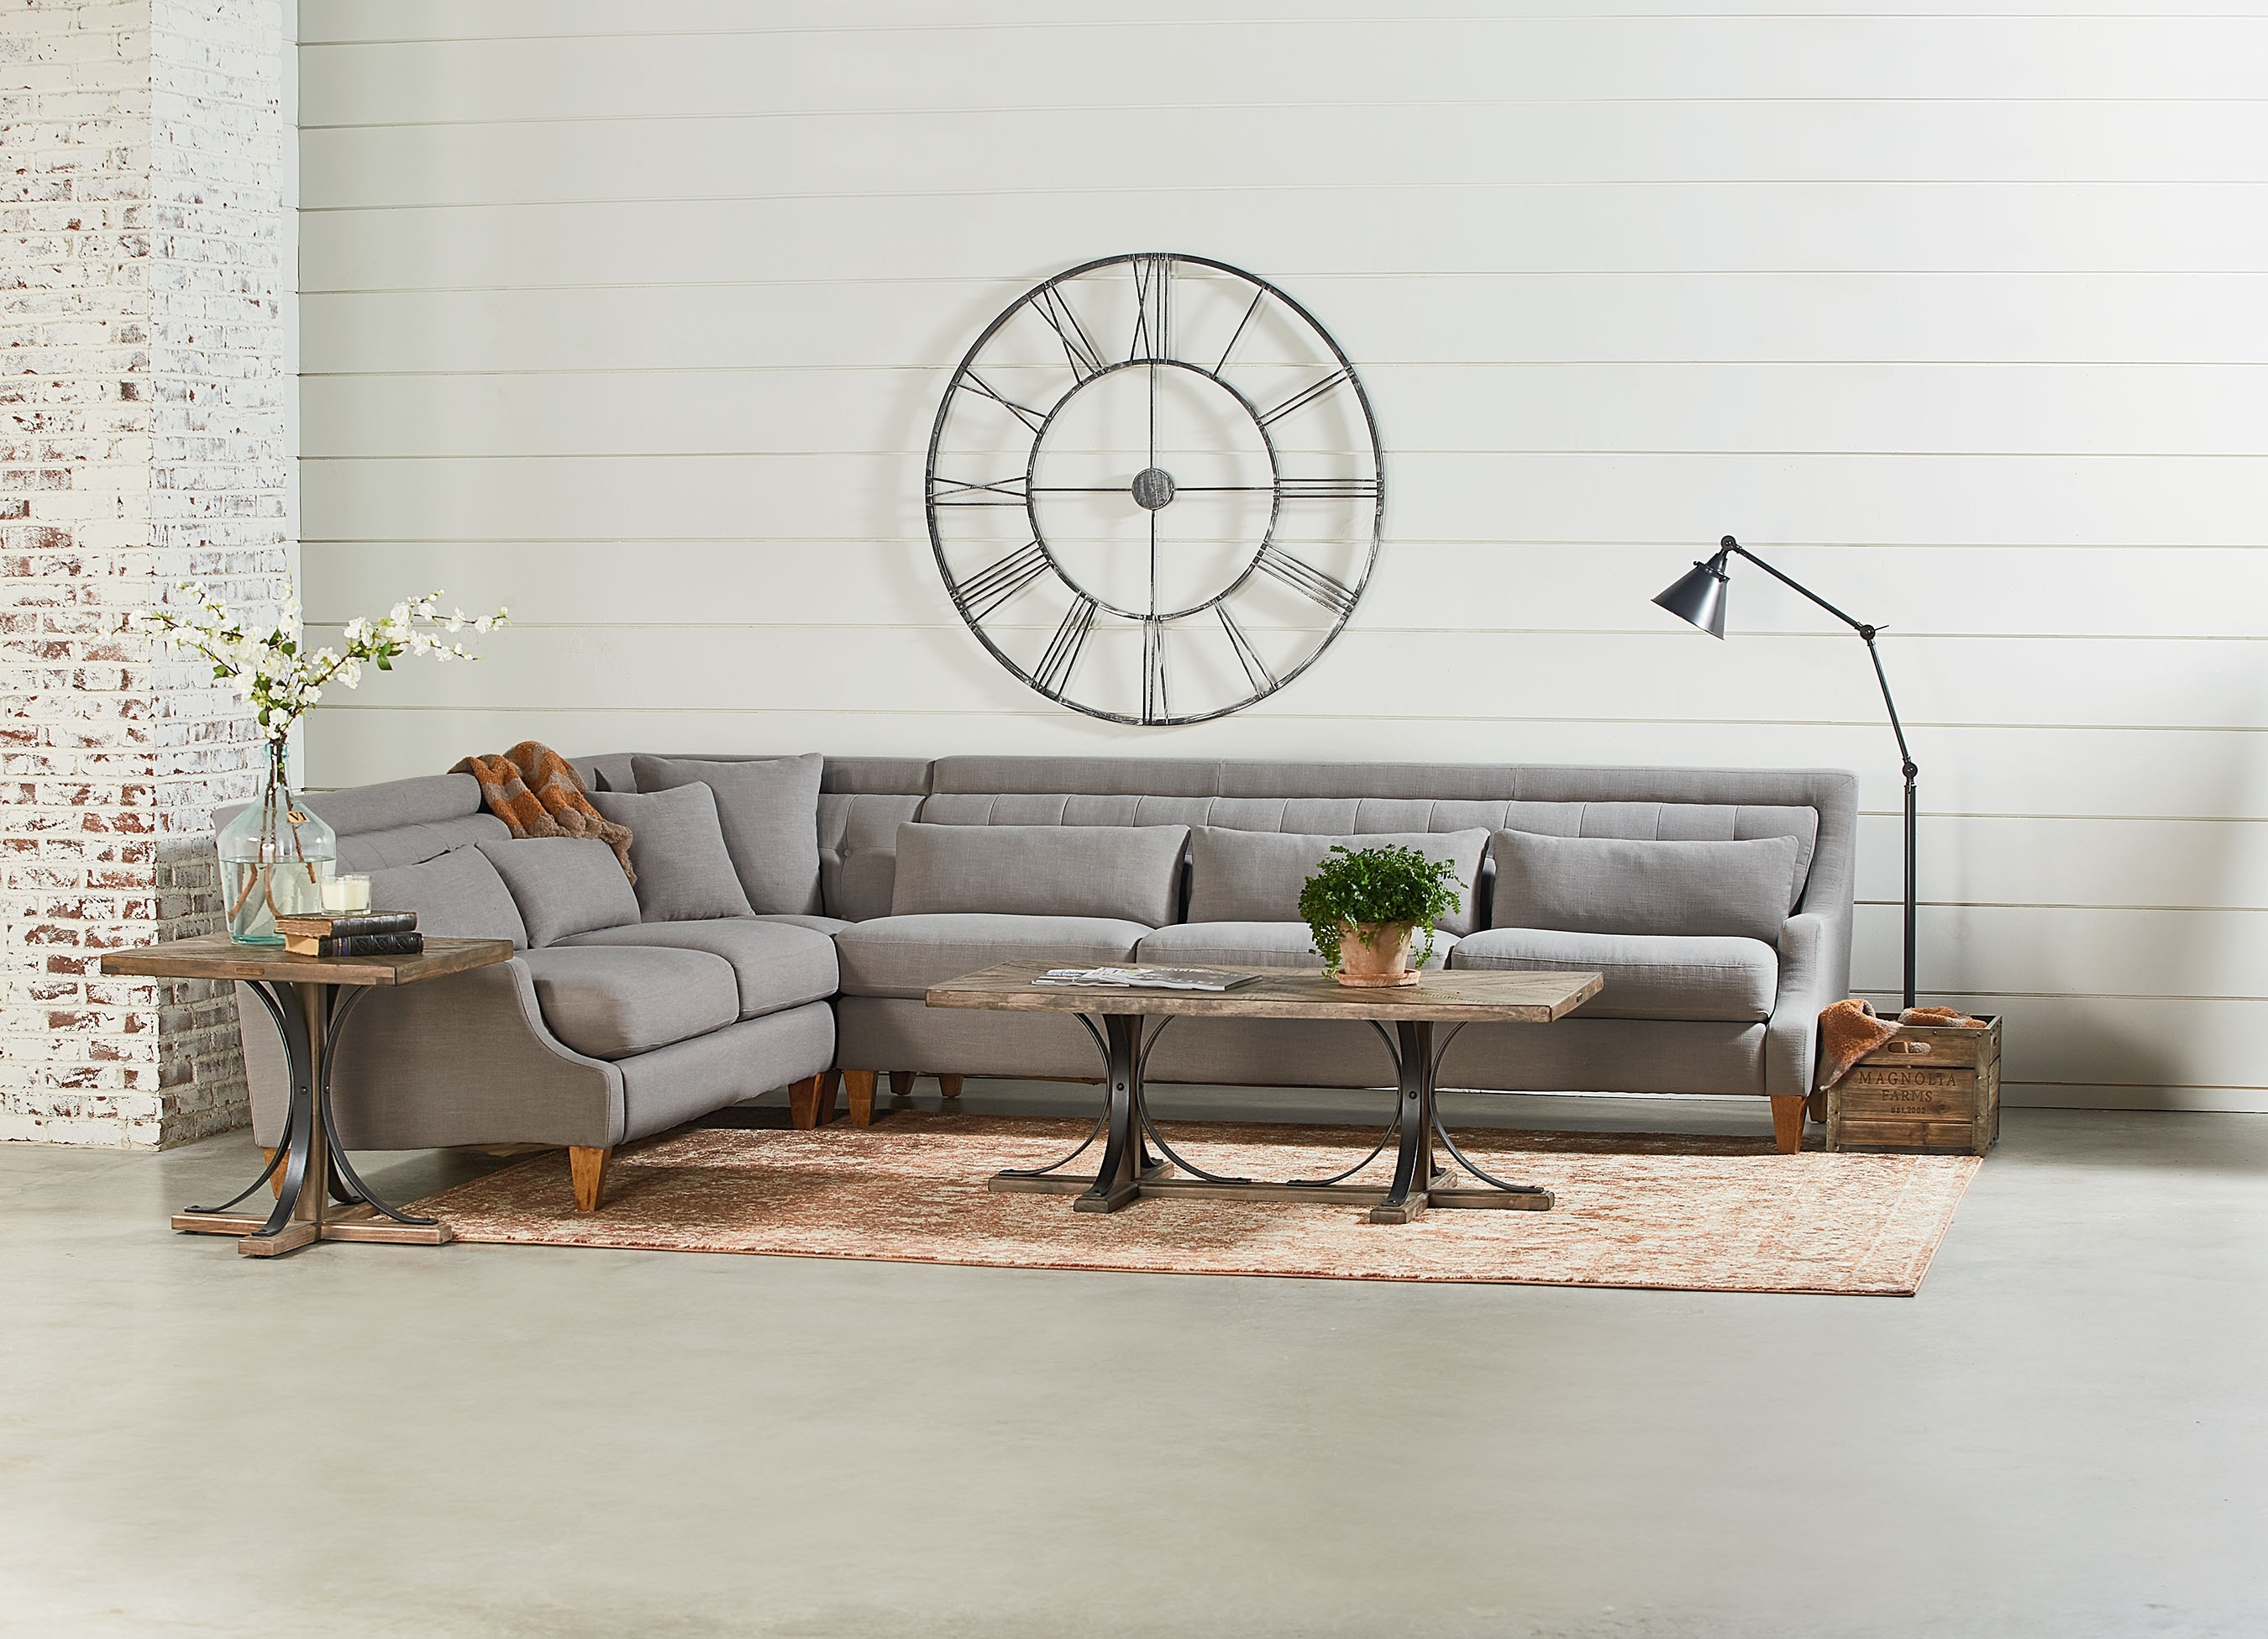 Iron Trestle Coffee Table – Magnolia Home In Current Magnolia Home Shop Floor Dining Tables With Iron Trestle (Image 6 of 20)